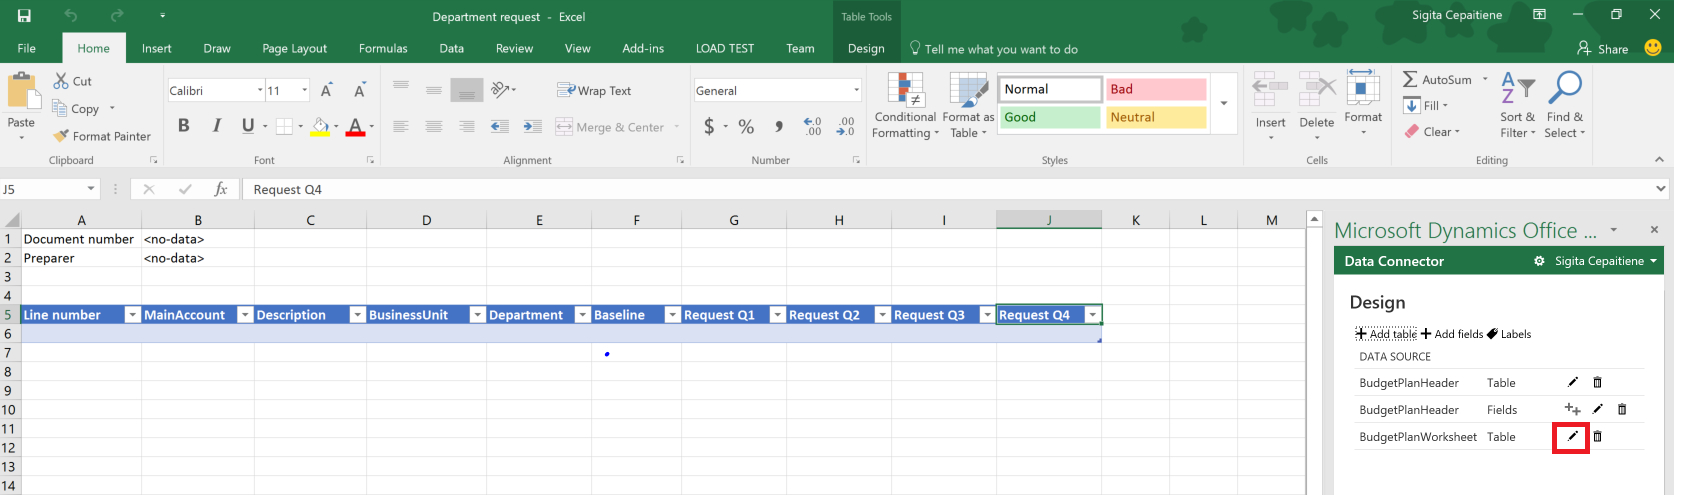 Excel Spreadsheet Tutorial 2010 Intended For Ms Excel Spreadsheet Tutorial Tally Youtube Microsoft Salaryt Bangla